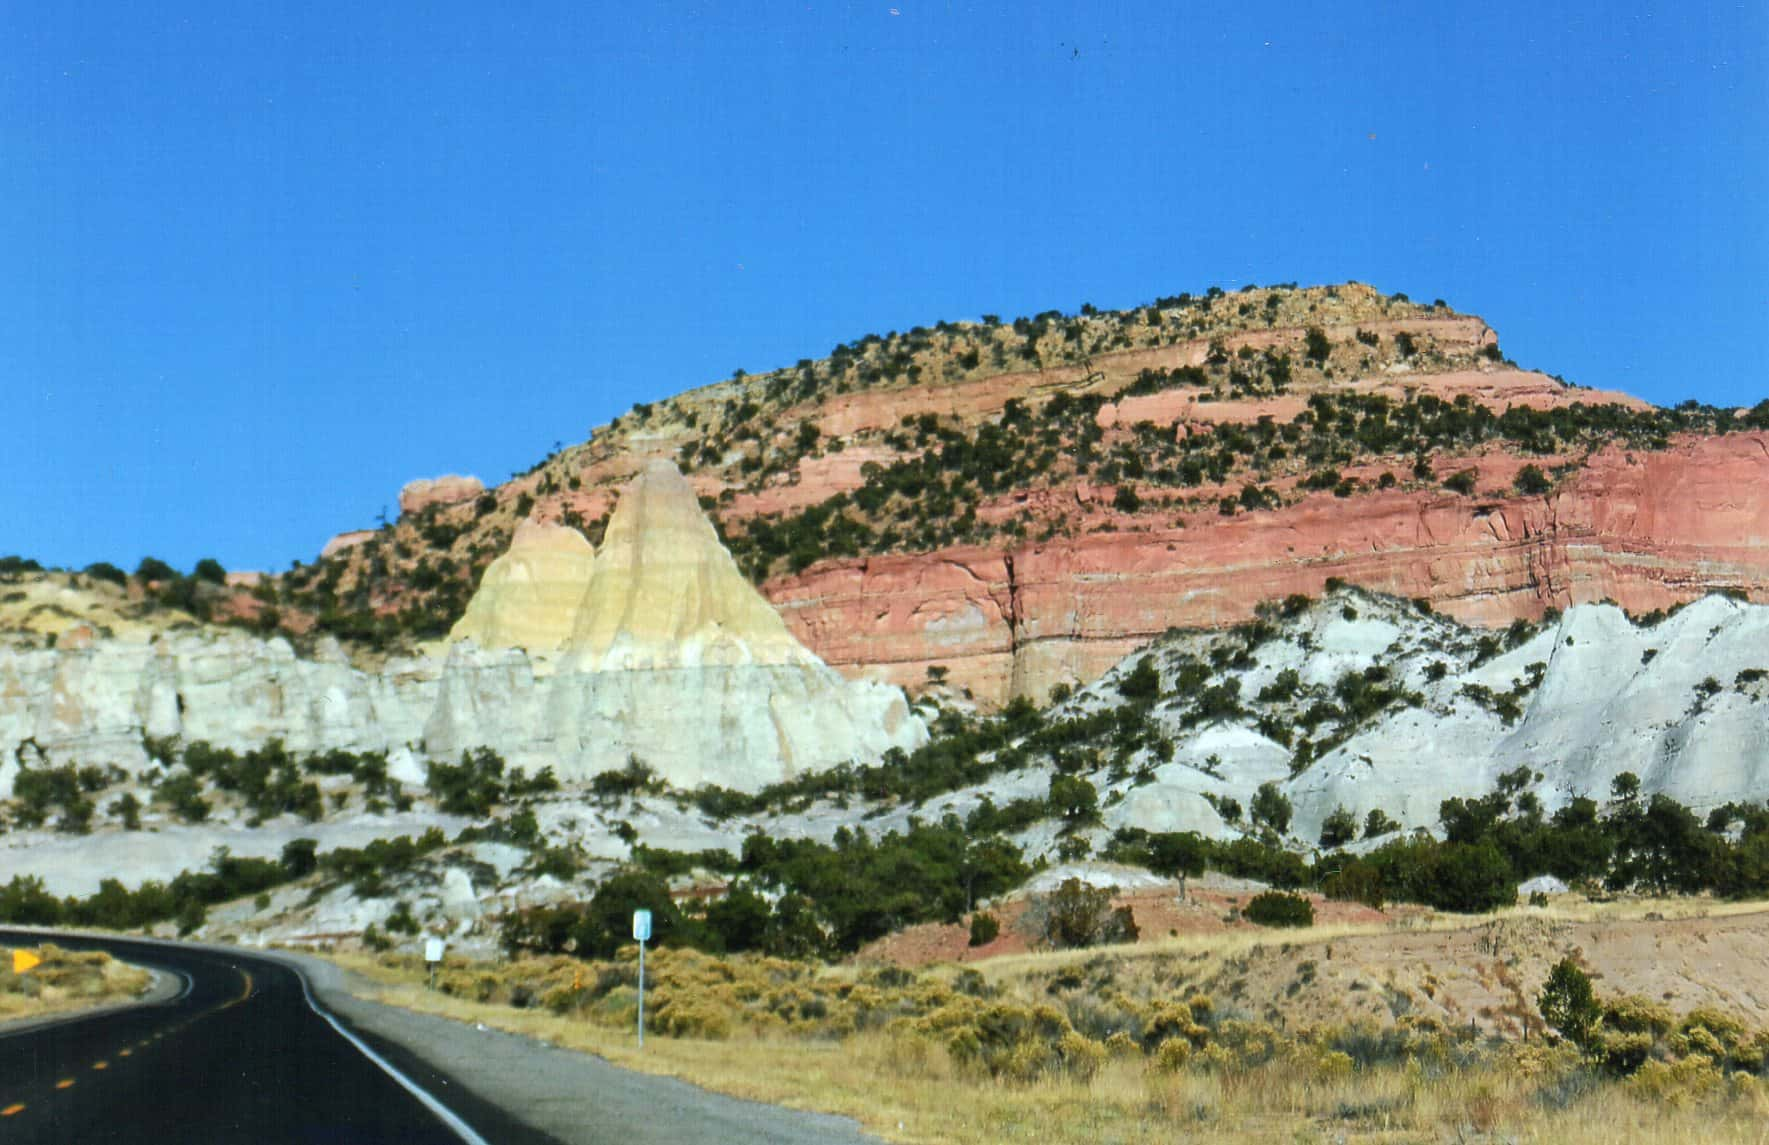 Navajo nation scenery